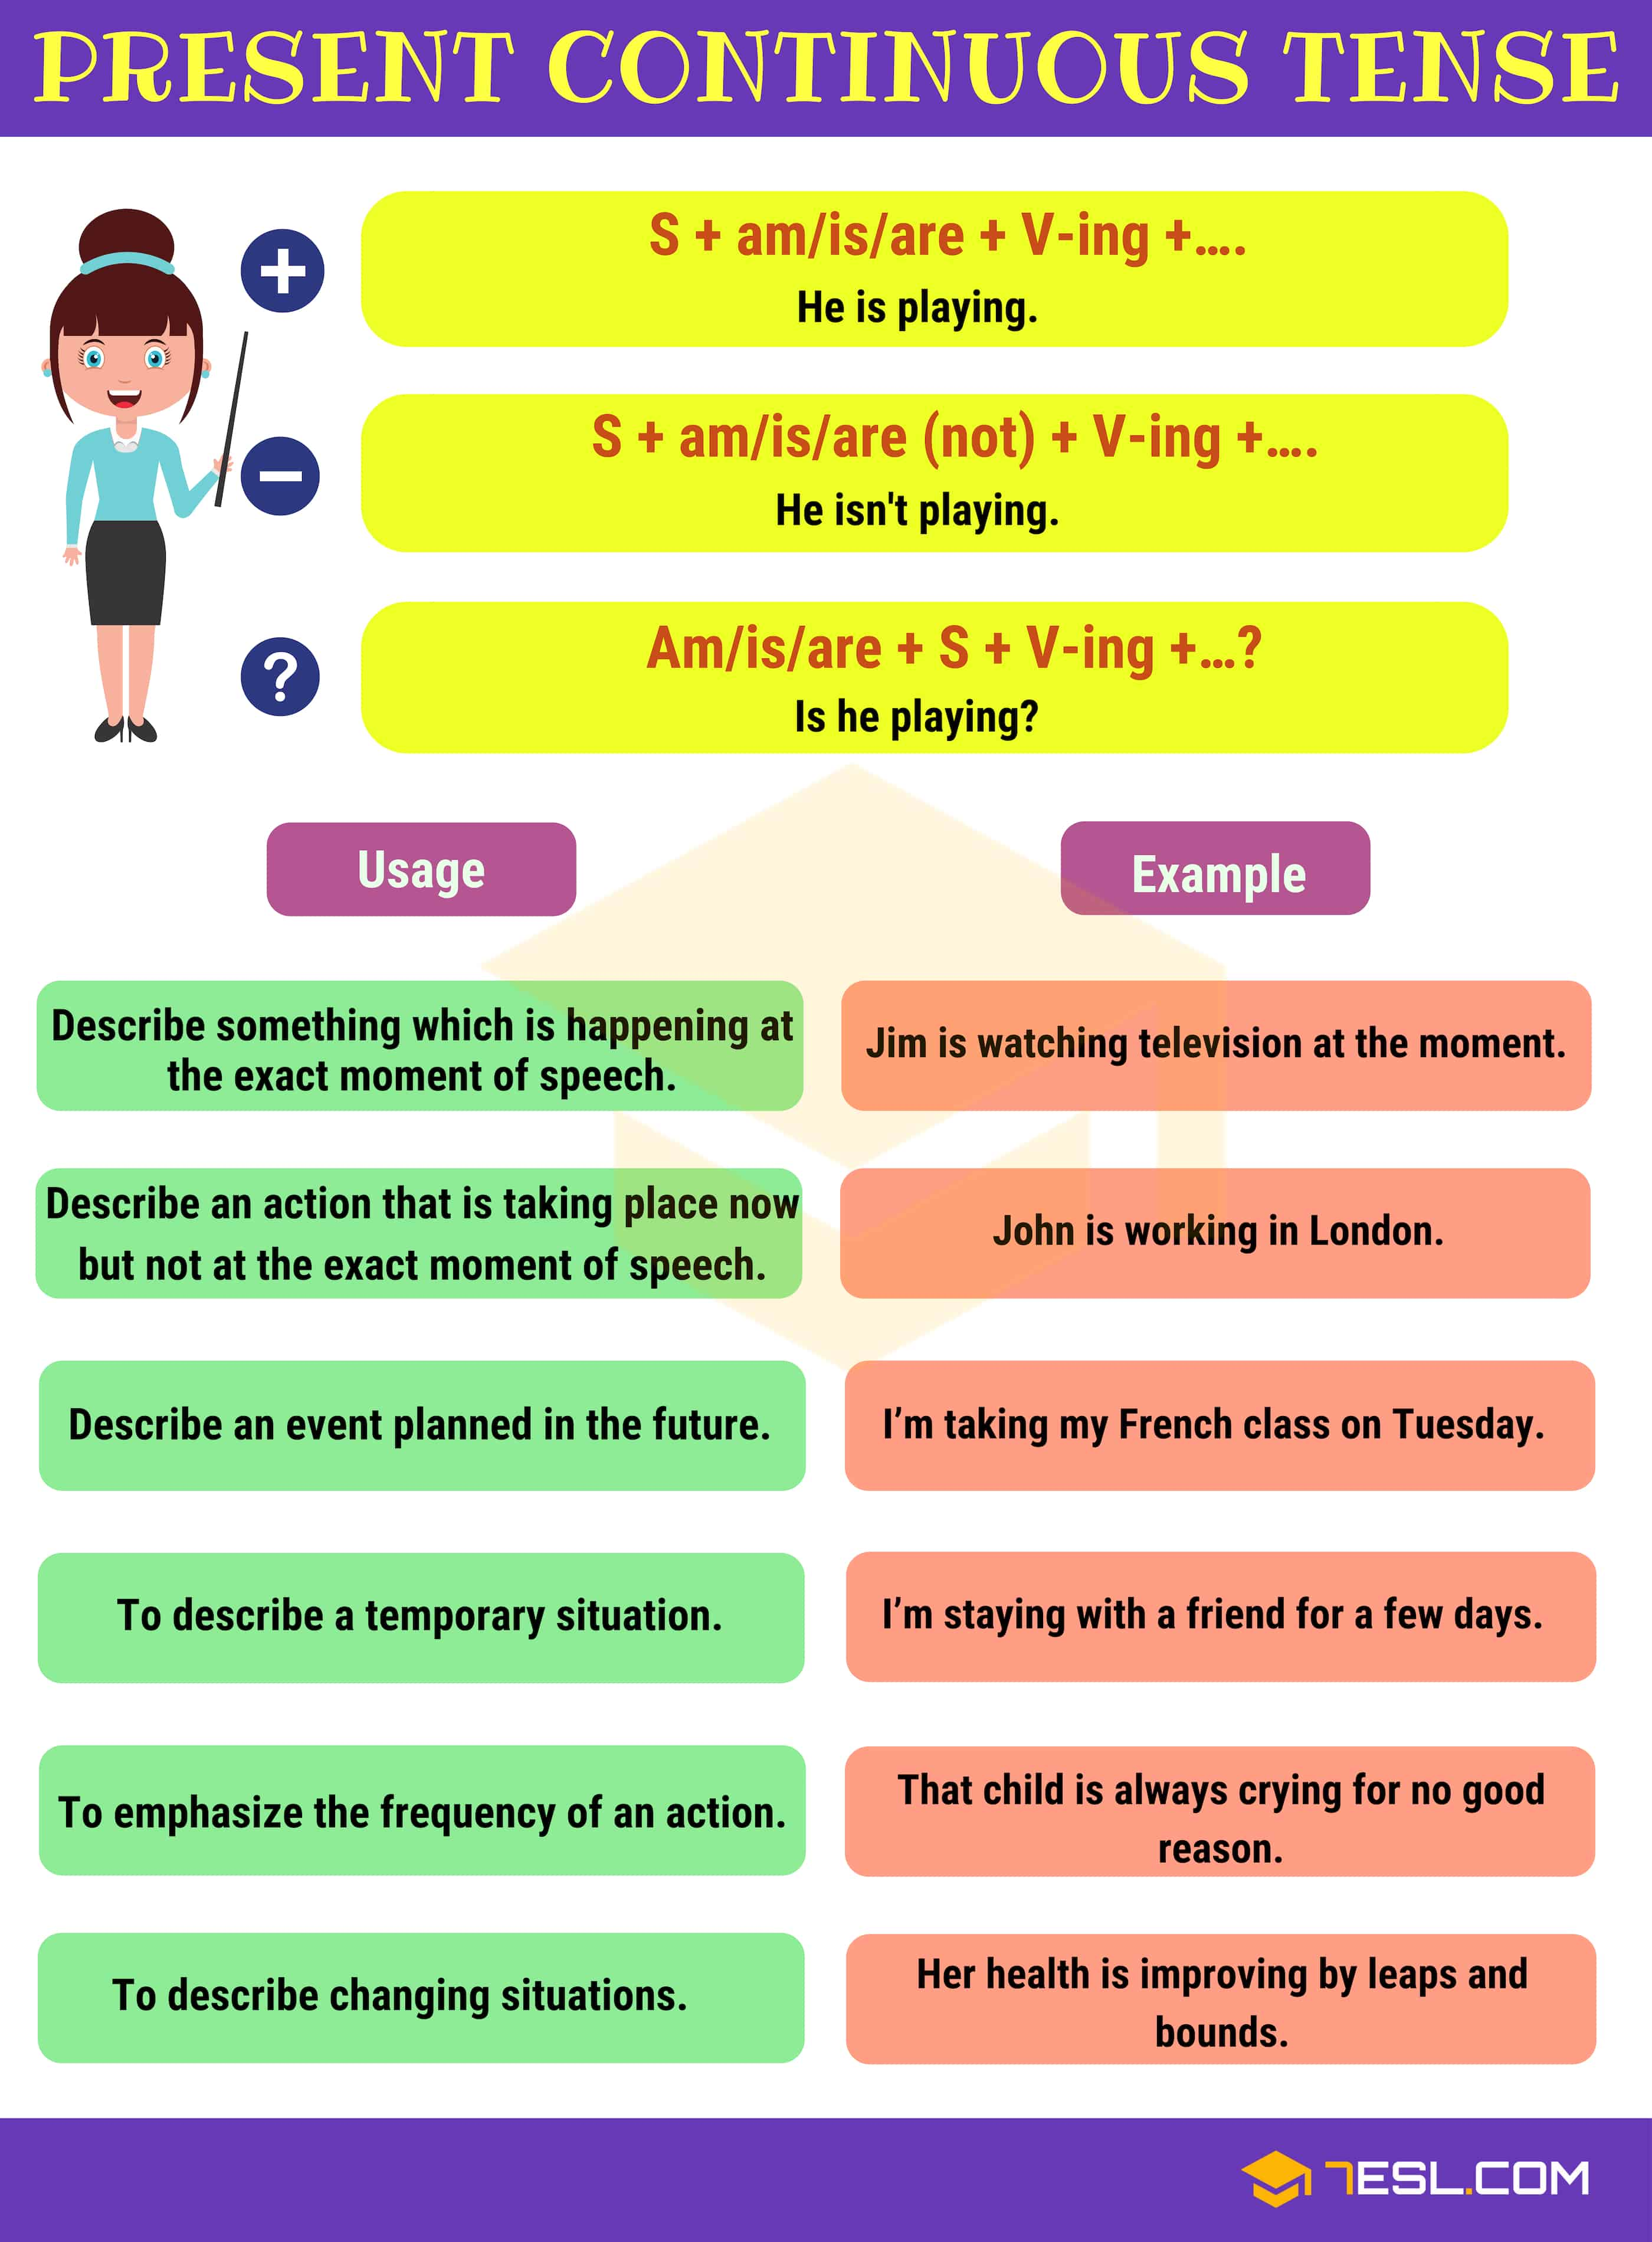 Present Continuous Tense Rules And Examples